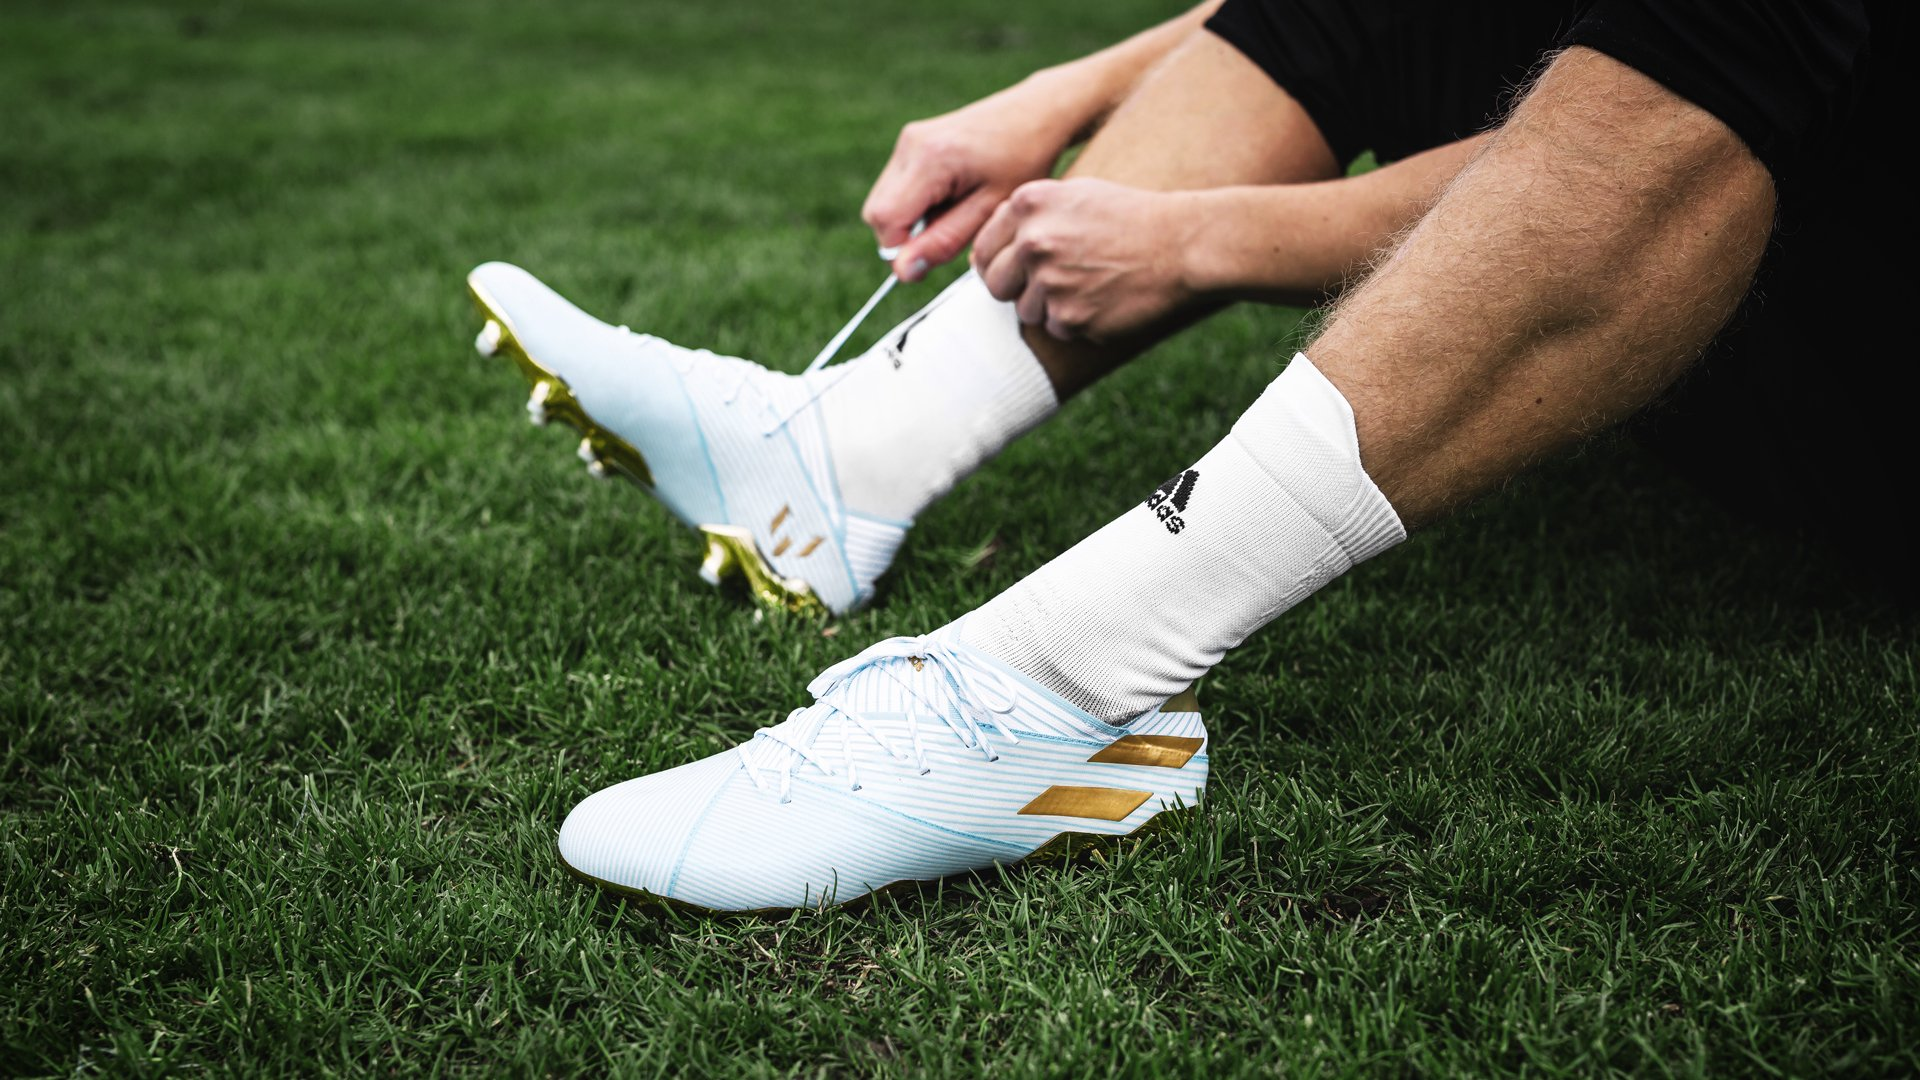 New Limited Edition boots for Messi